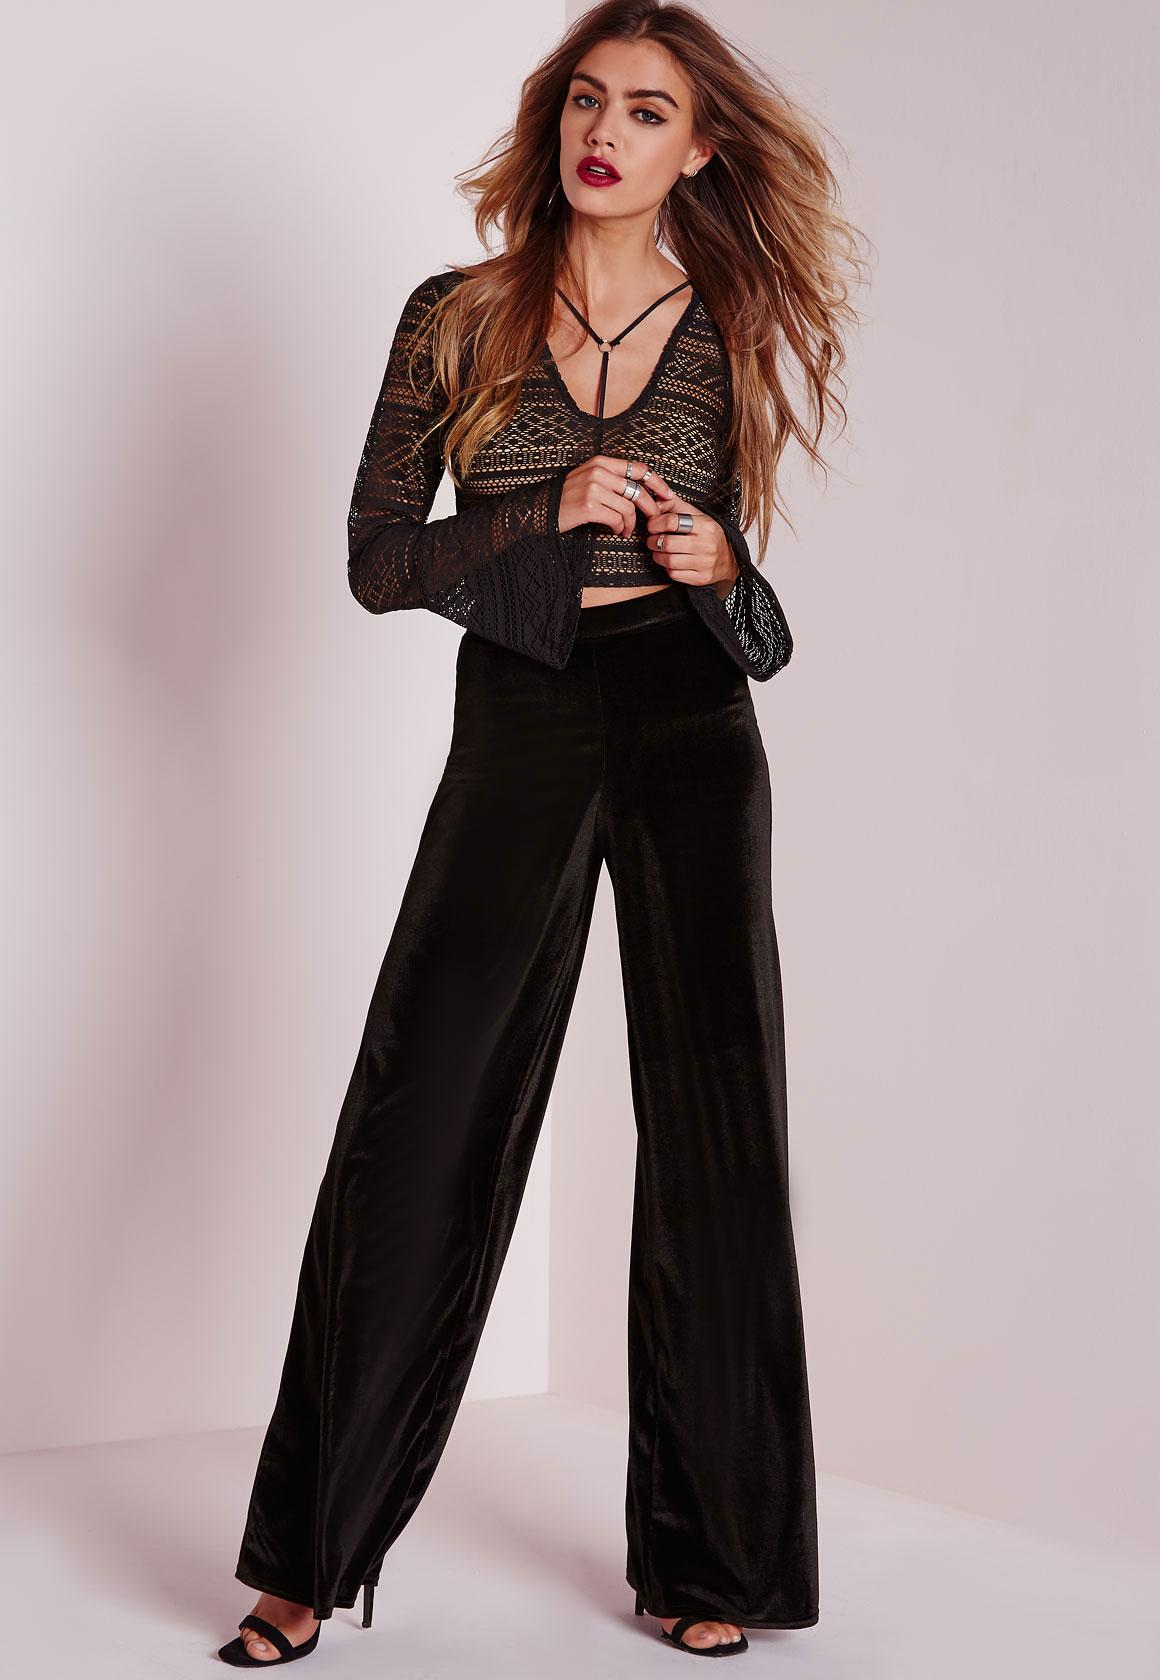 Velvet Wide Leg Pants Black - Pants - Missguided